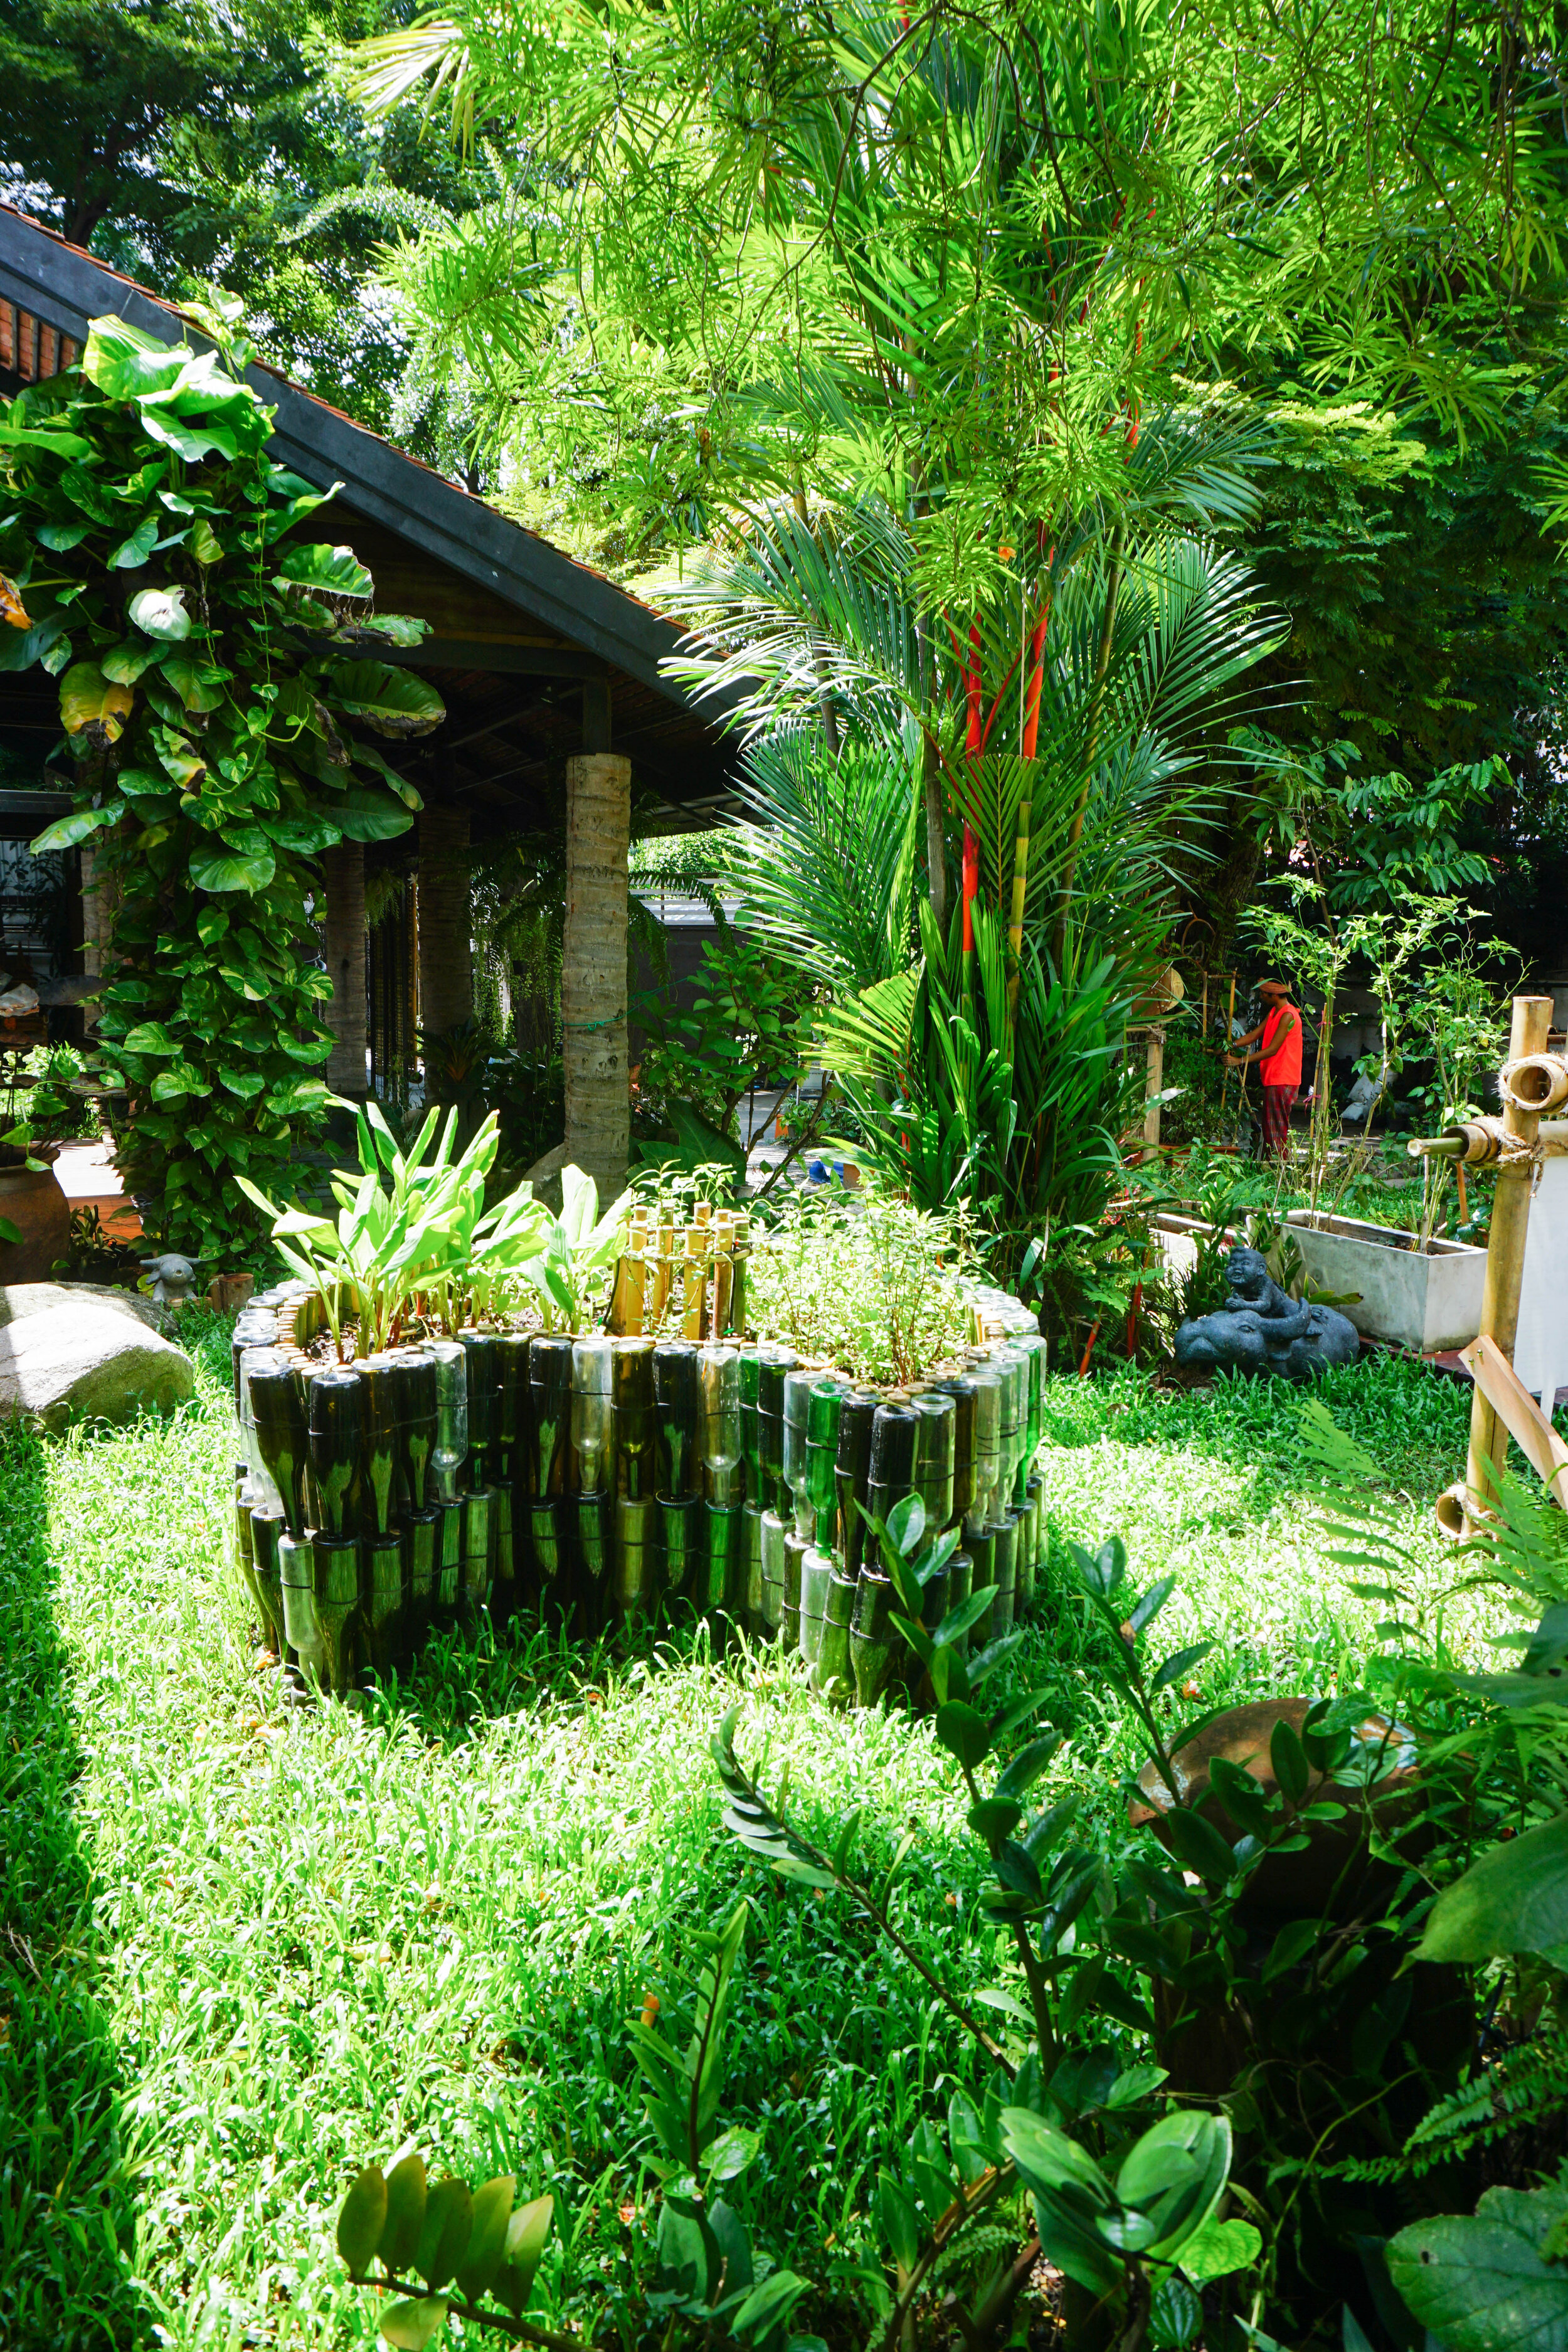 Openspace: Keyhole garden design using permaculture at the Bo.lan - the michelin star restaurant in Bangkok